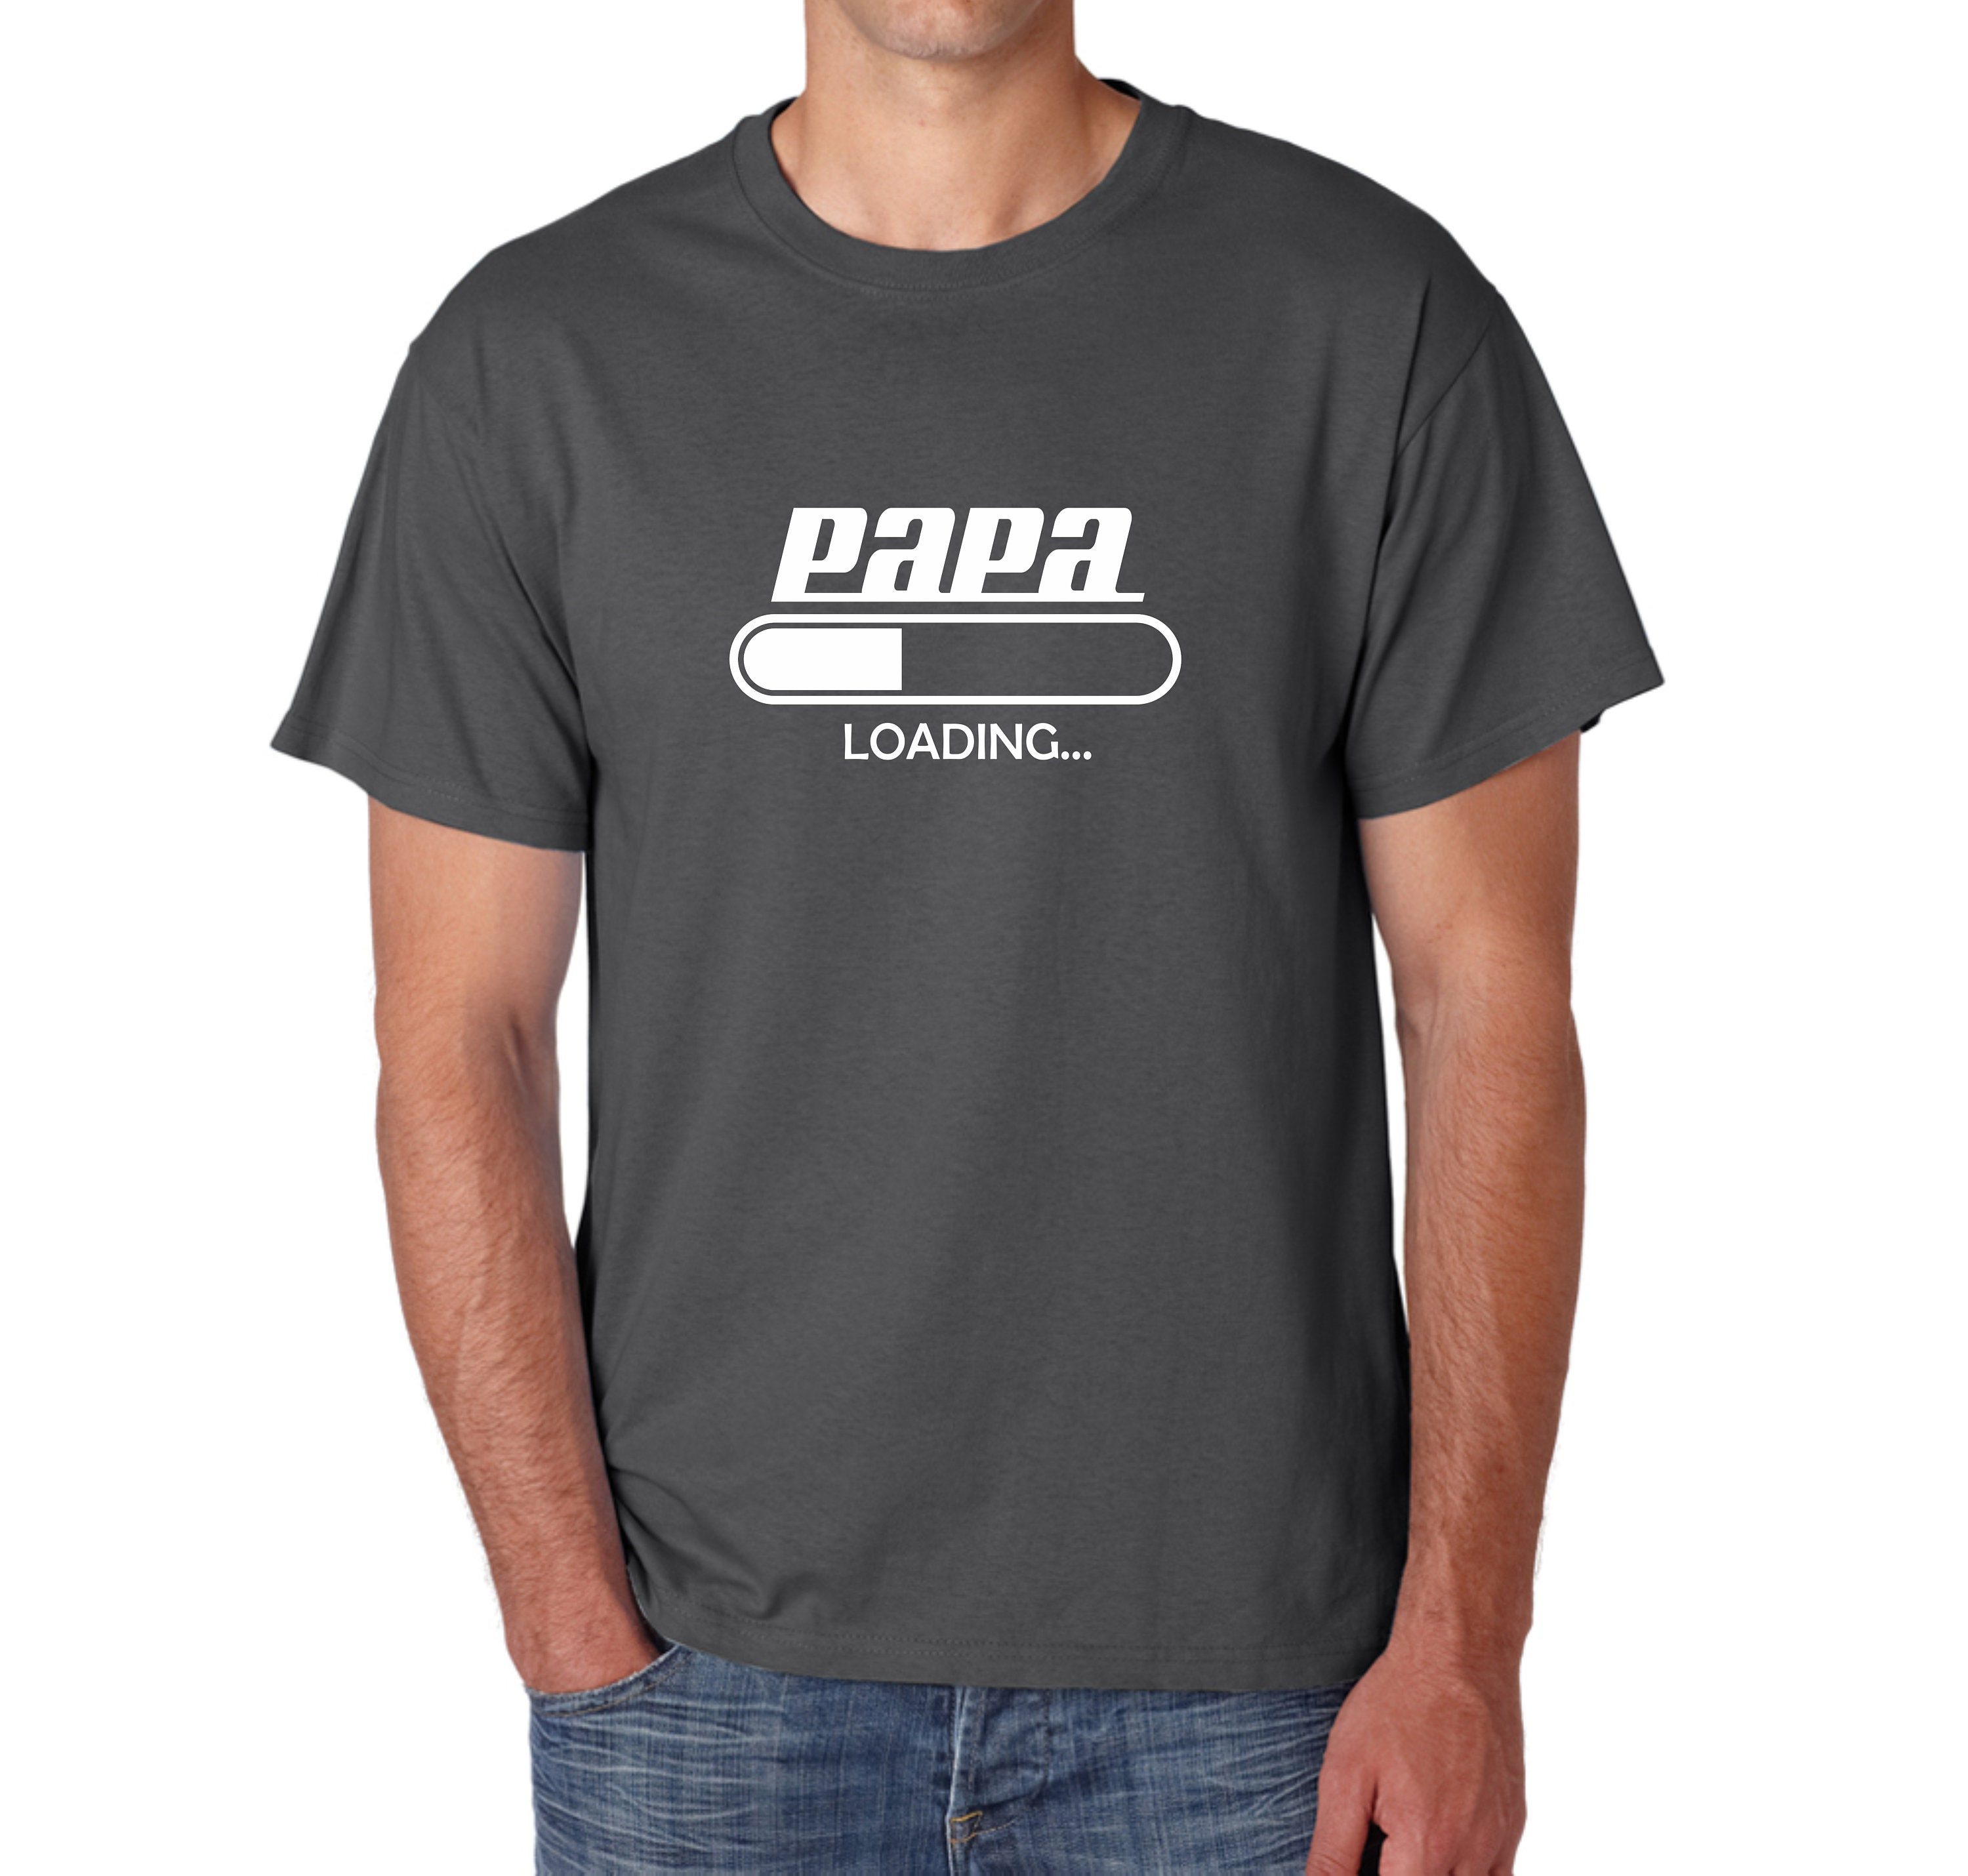 3238a8e6 PAPA LOADING T-Shirt Present For Future Dad Father Paternity | Etsy